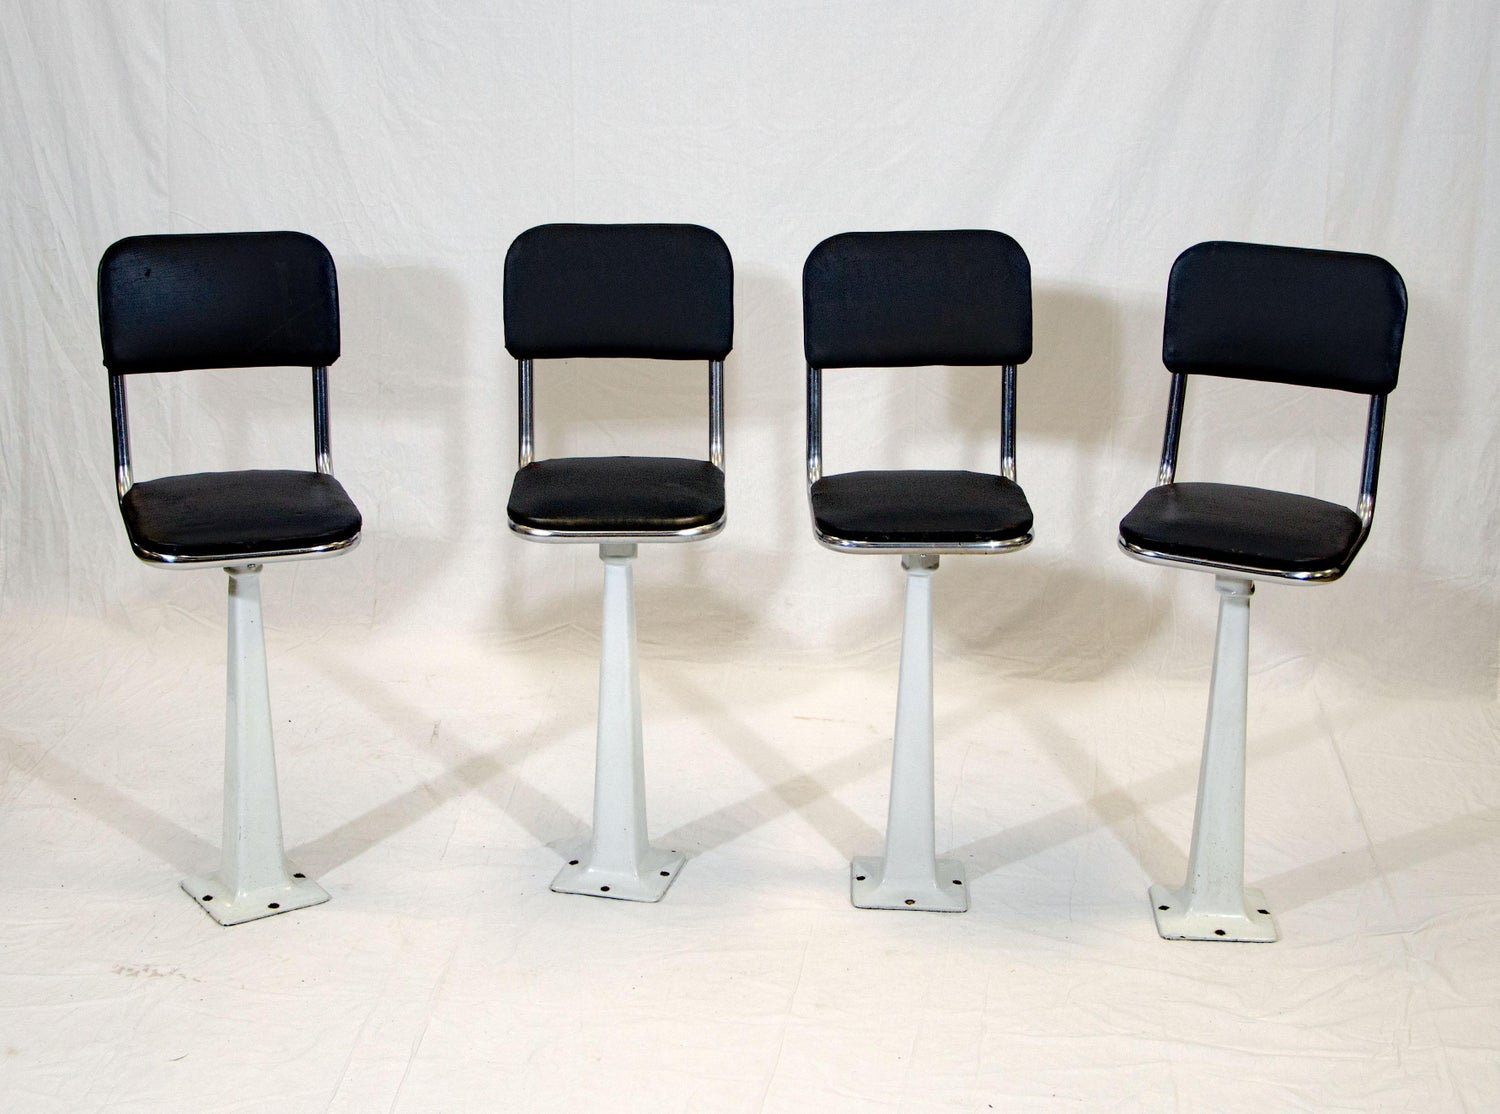 Incredible Four Vintage Ice Cream Parlor Soda Fountain Stools Alphanode Cool Chair Designs And Ideas Alphanodeonline